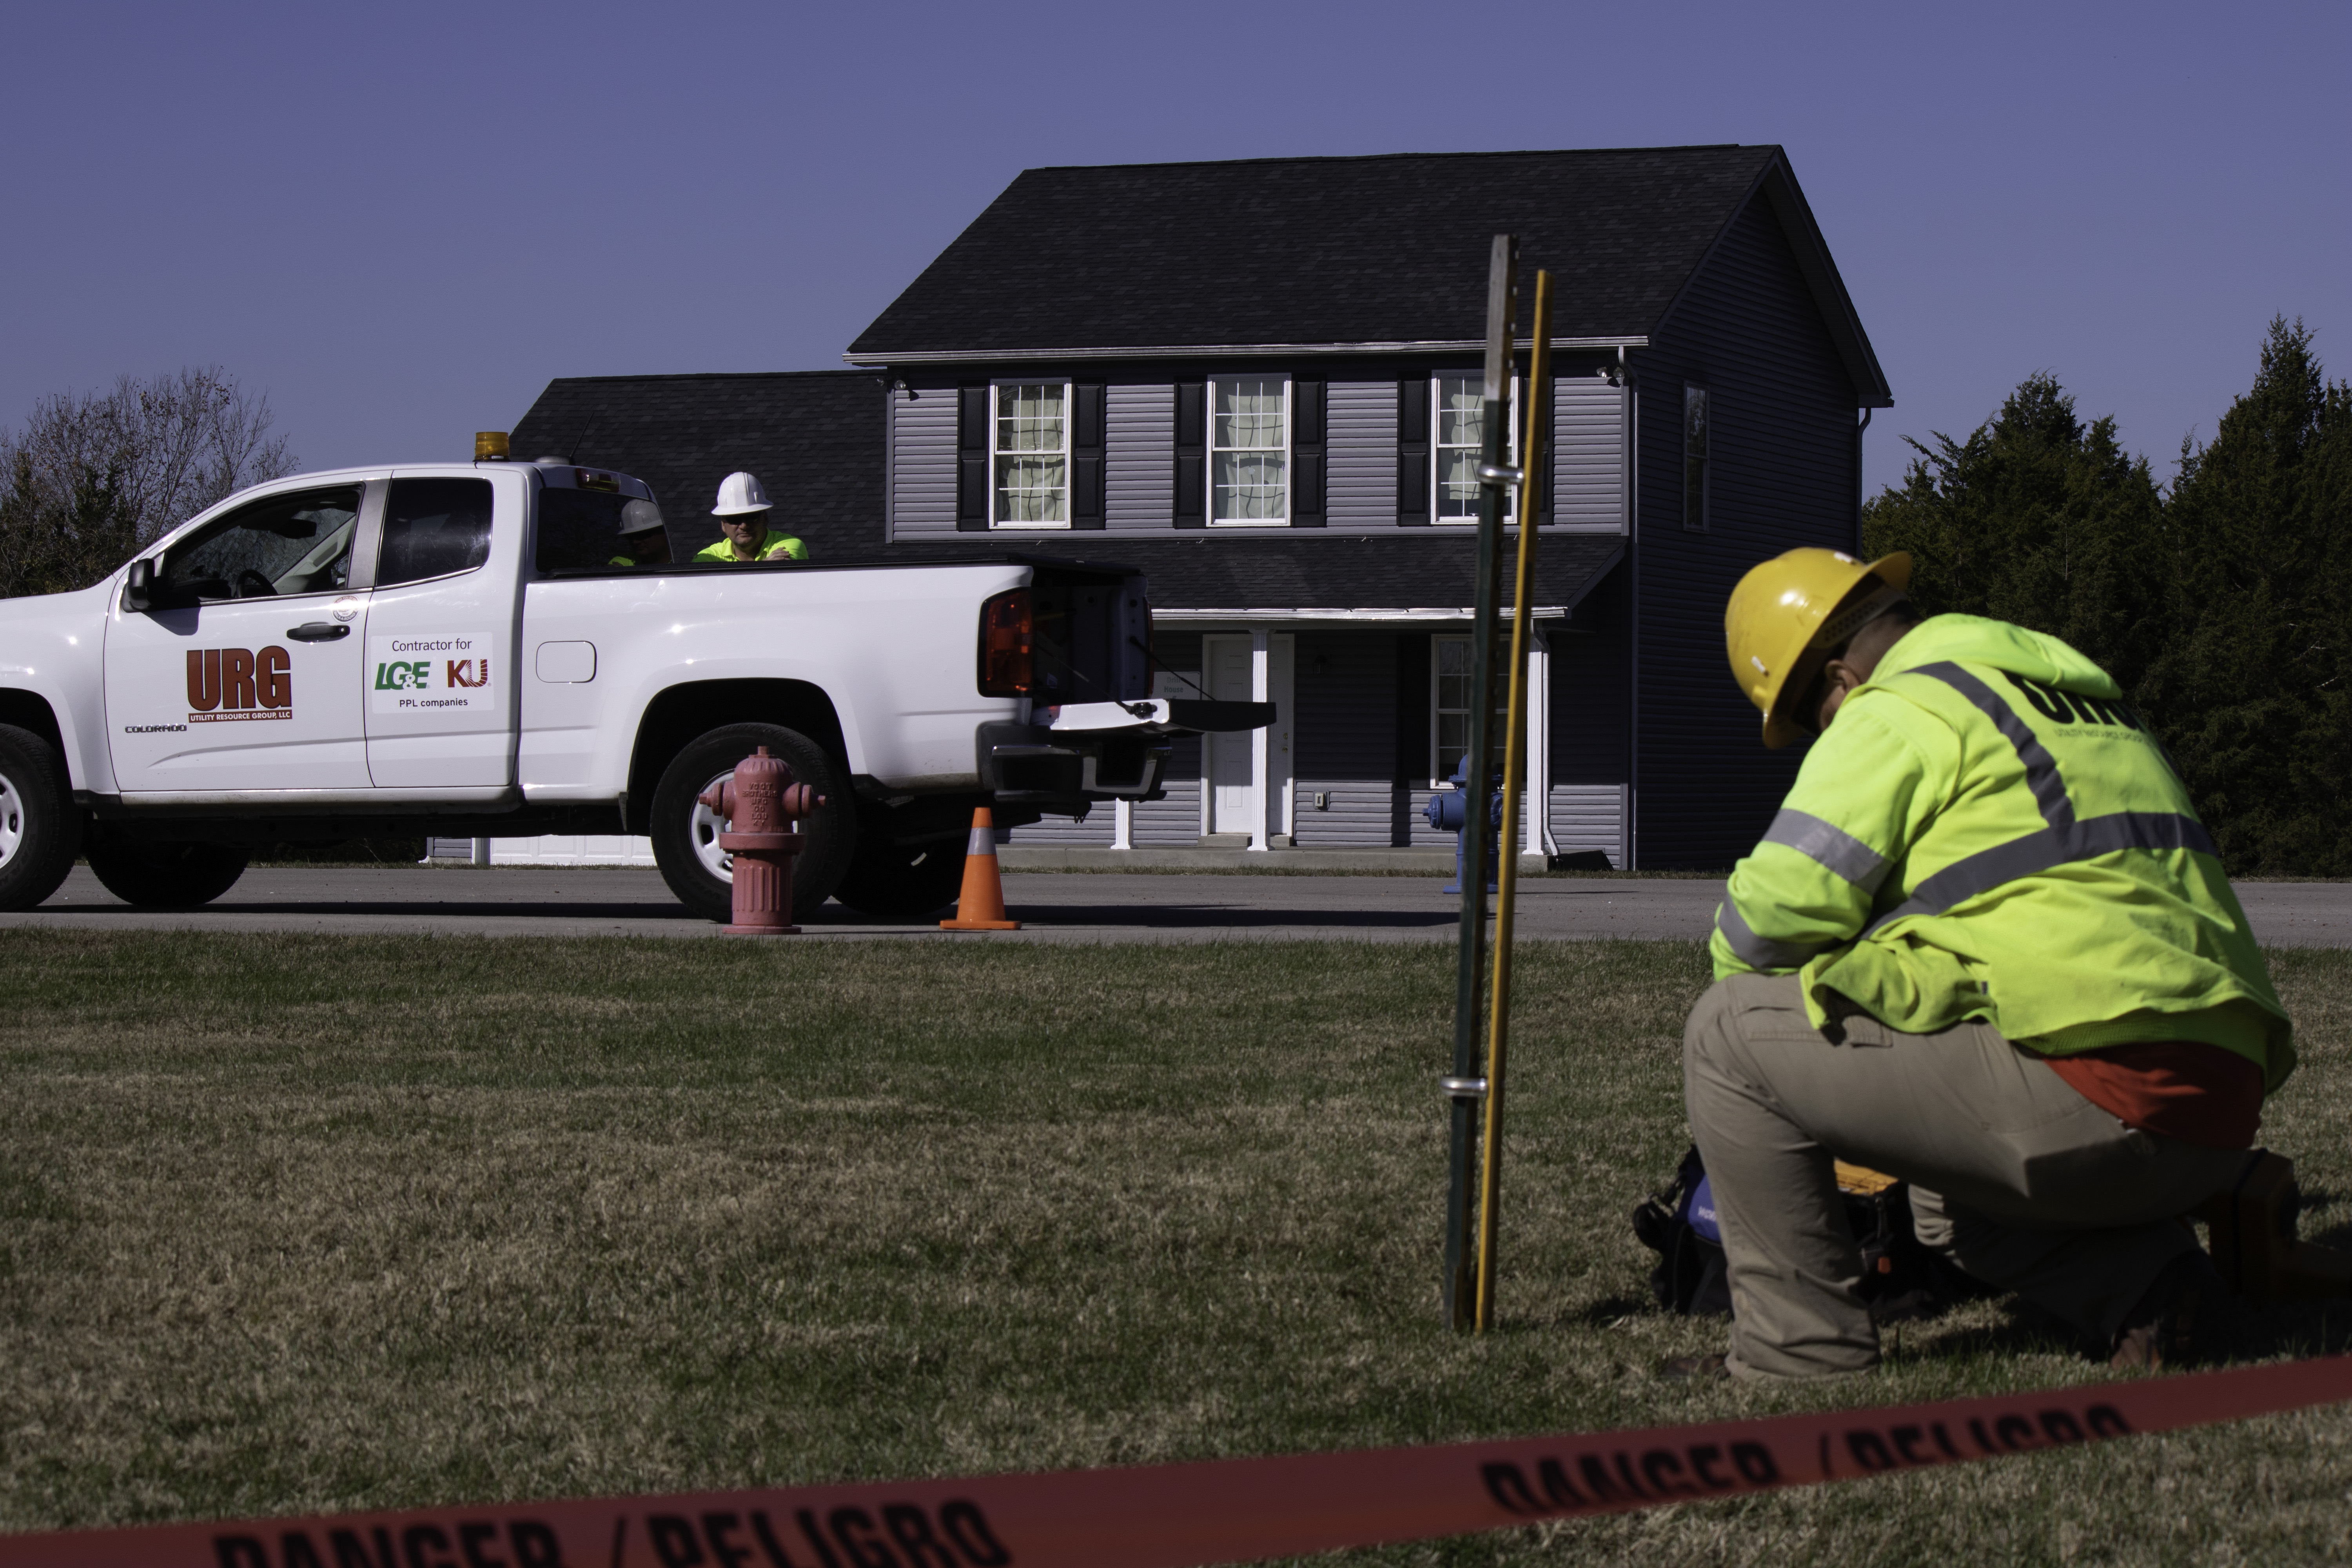 Mock Pipeline Strike Illustrates Consequences of Unsafe Digging, Reinforces Proper Protocol